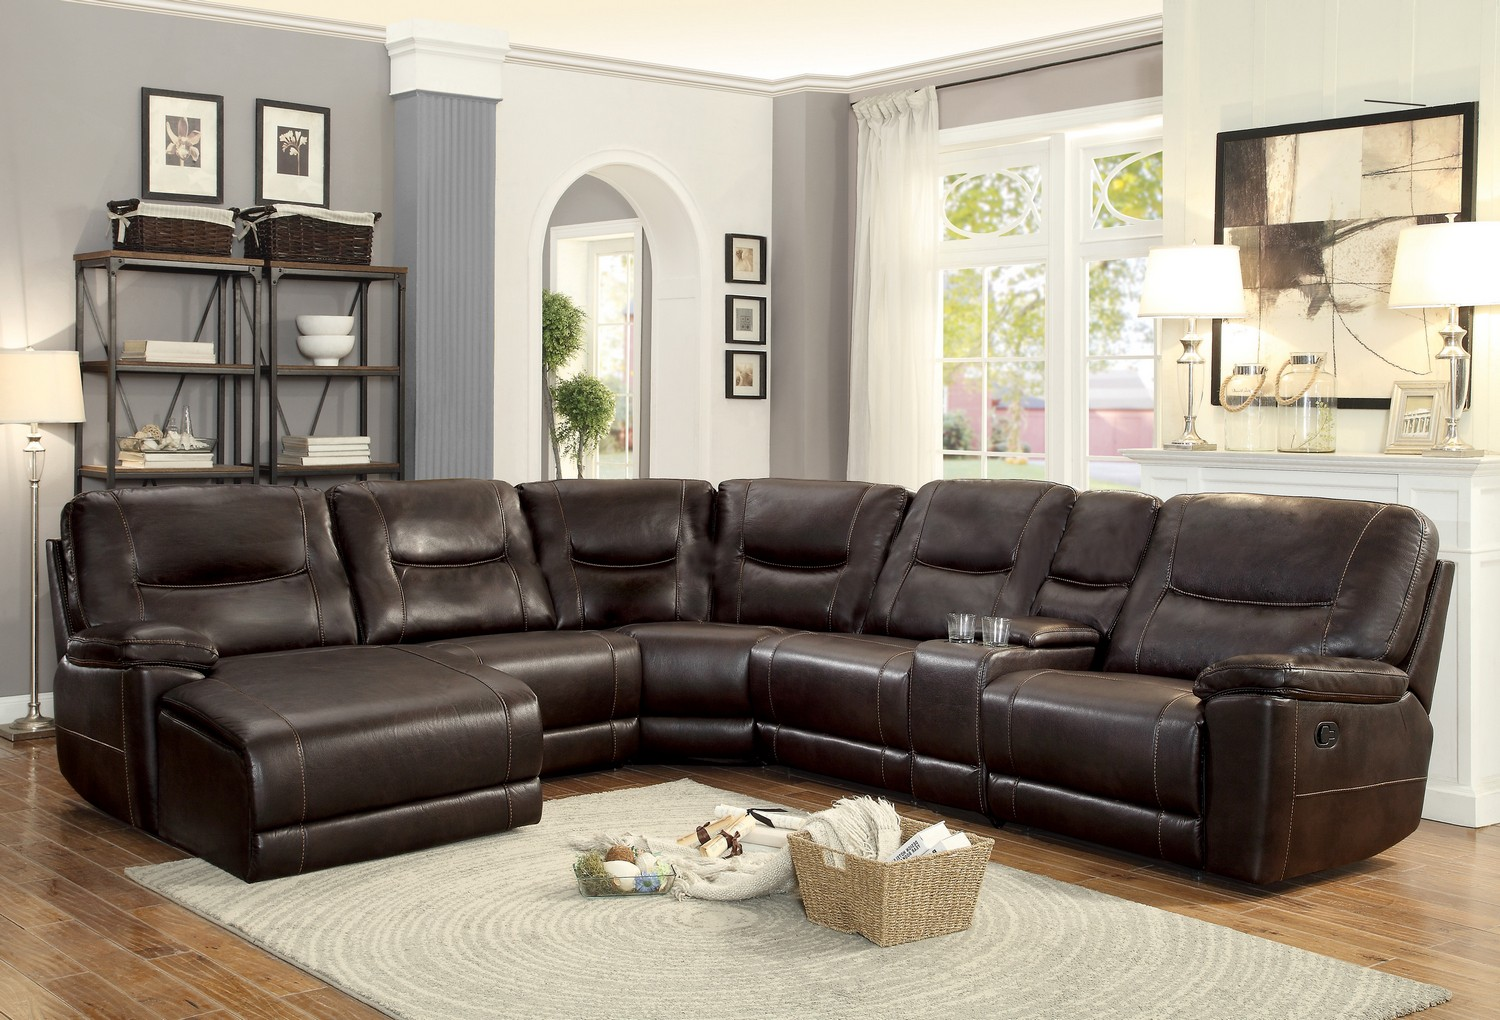 Homelegance Columbus Reclining Sectional Sofa Set B - Breathable Faux Leather - Dark Brown